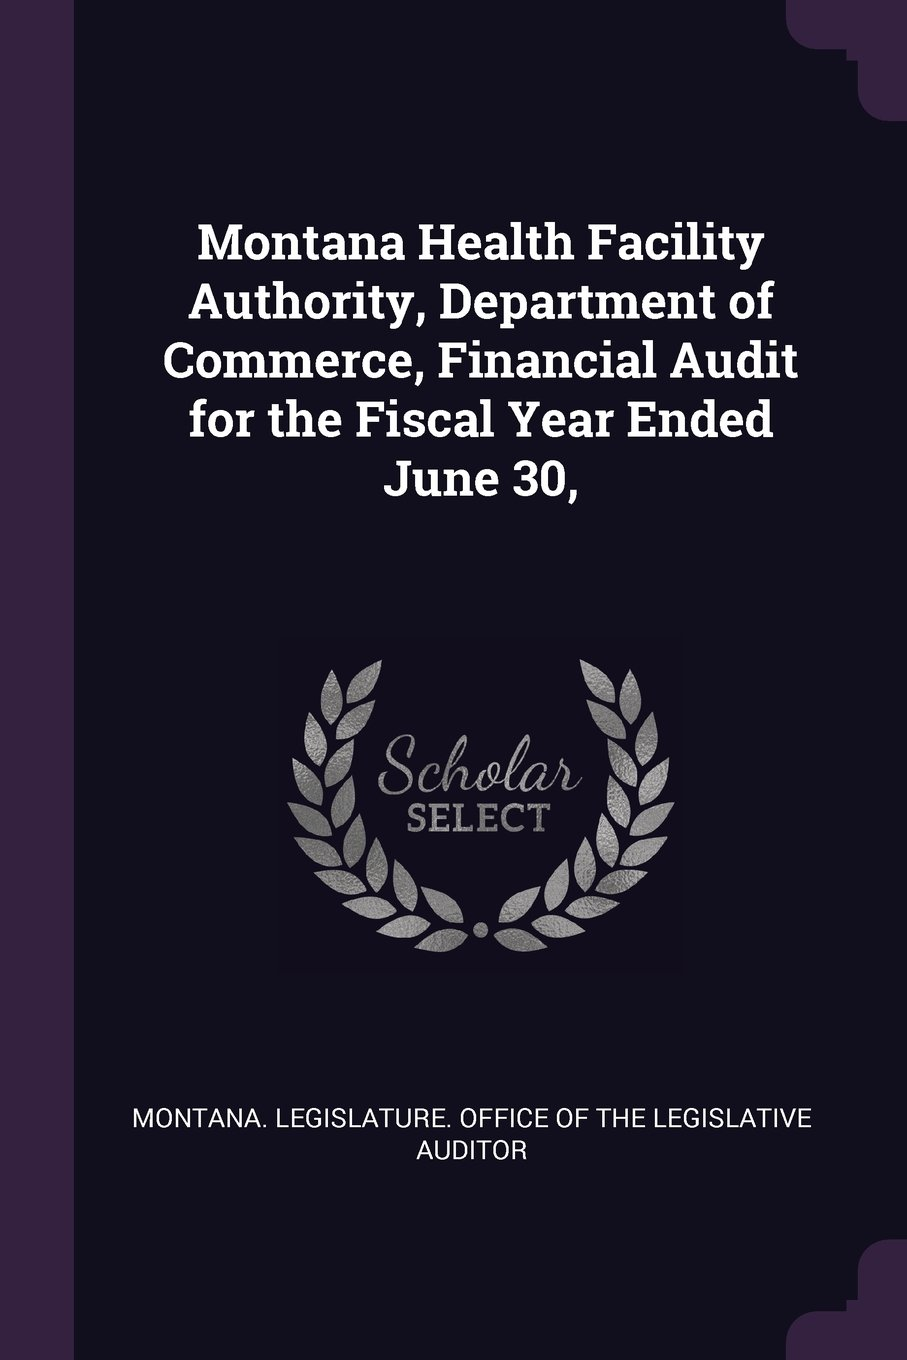 Montana Health Facility Authority, Department of Commerce, Financial Audit for the Fiscal Year Ended June 30, pdf